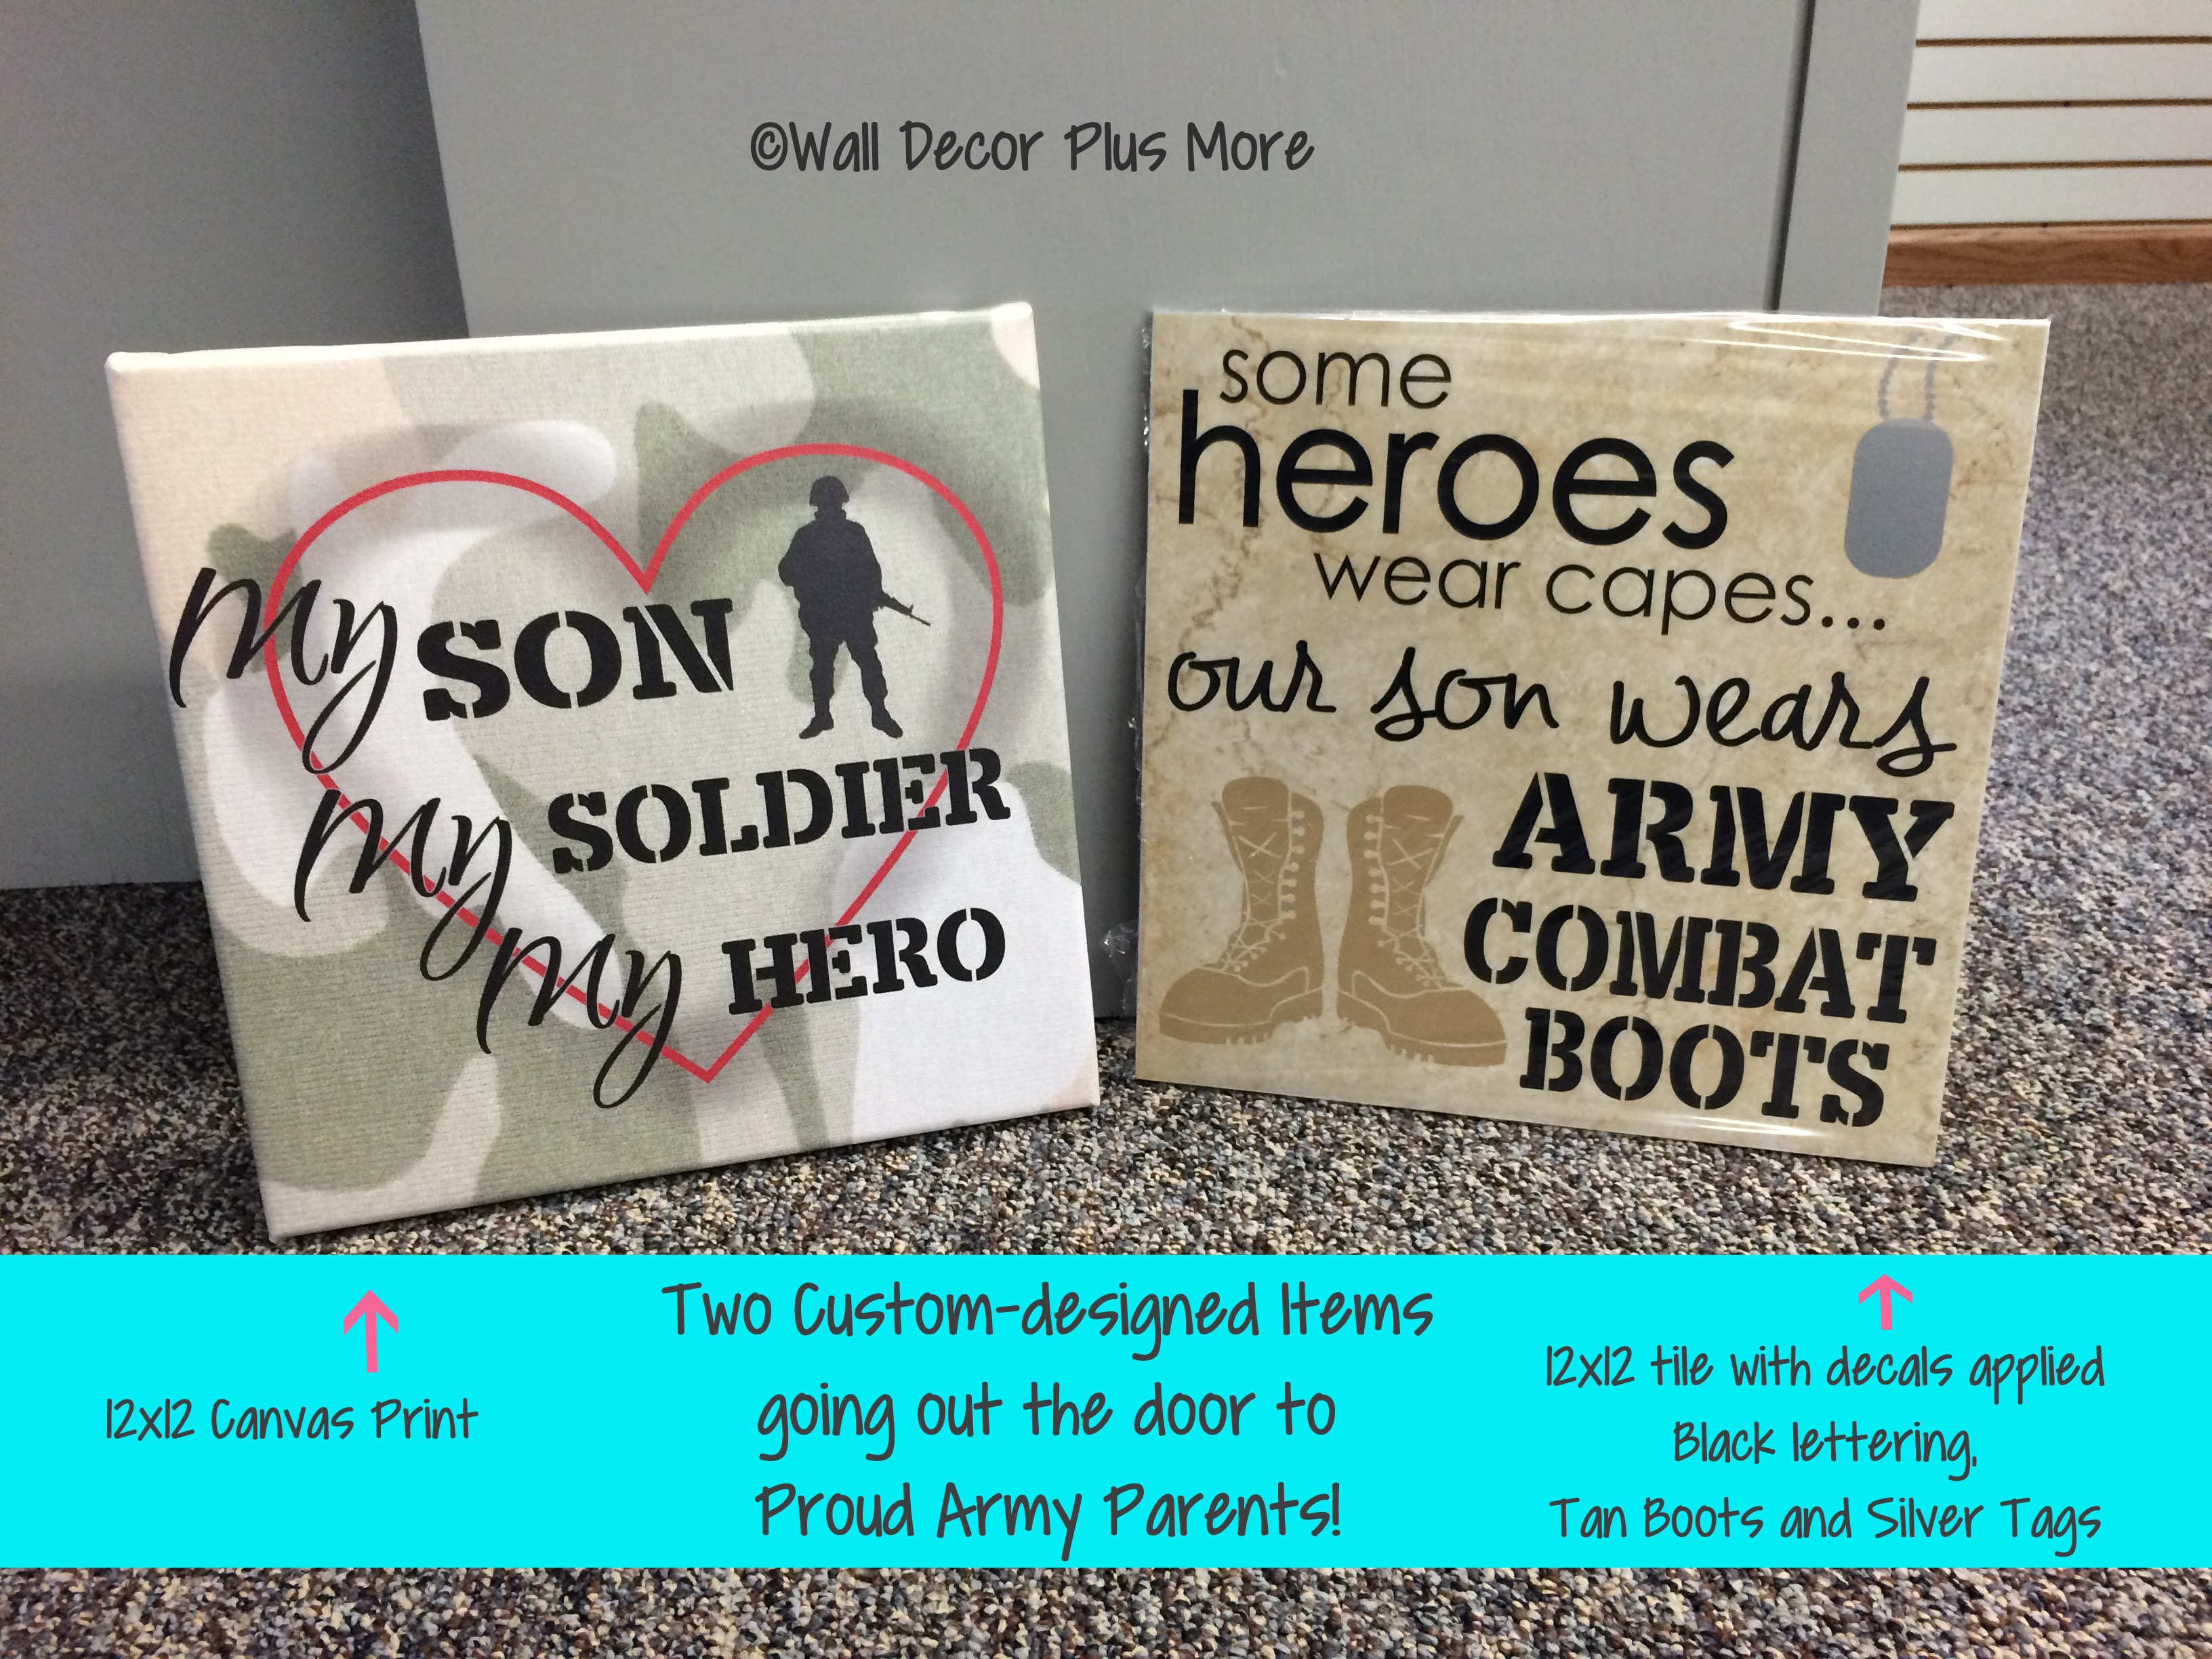 custom-products-army-parents-tile-with-decals-and-canvas-print.jpg